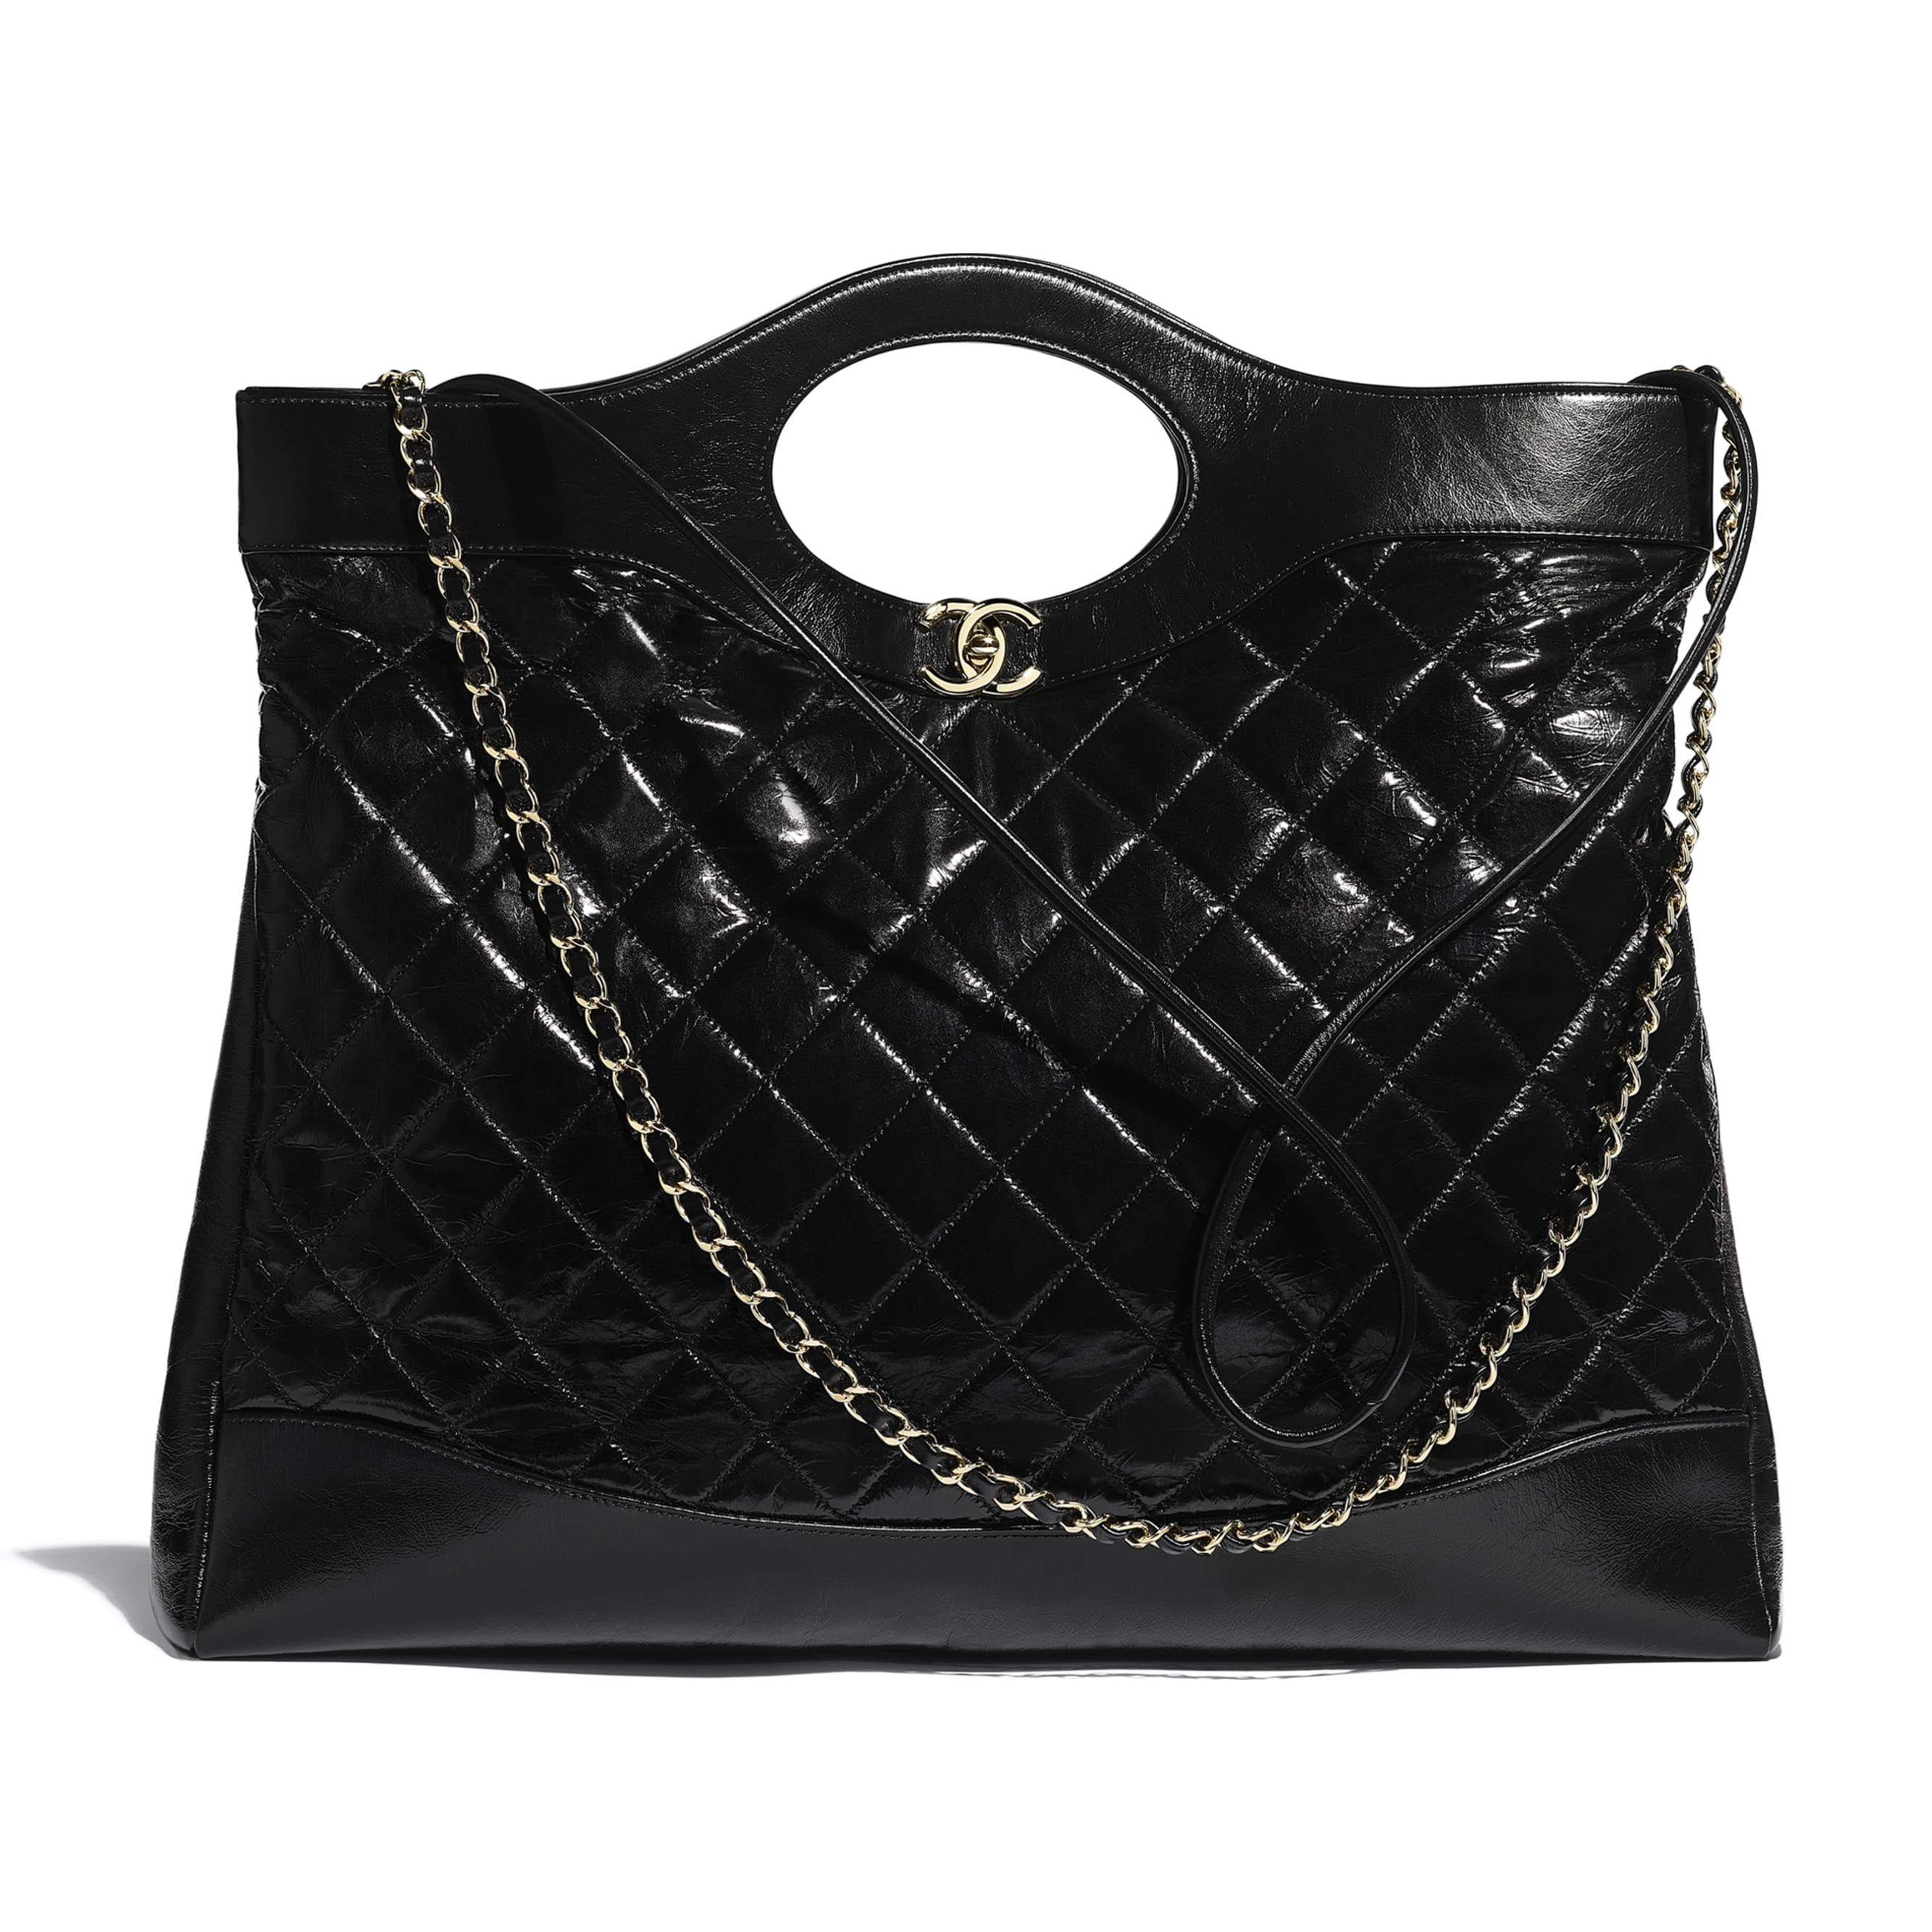 CHANEL 31 Large Shopping Bag - Black - Shiny Crumpled Calfskin & Gold-Tone Metal - Default view - see standard sized version